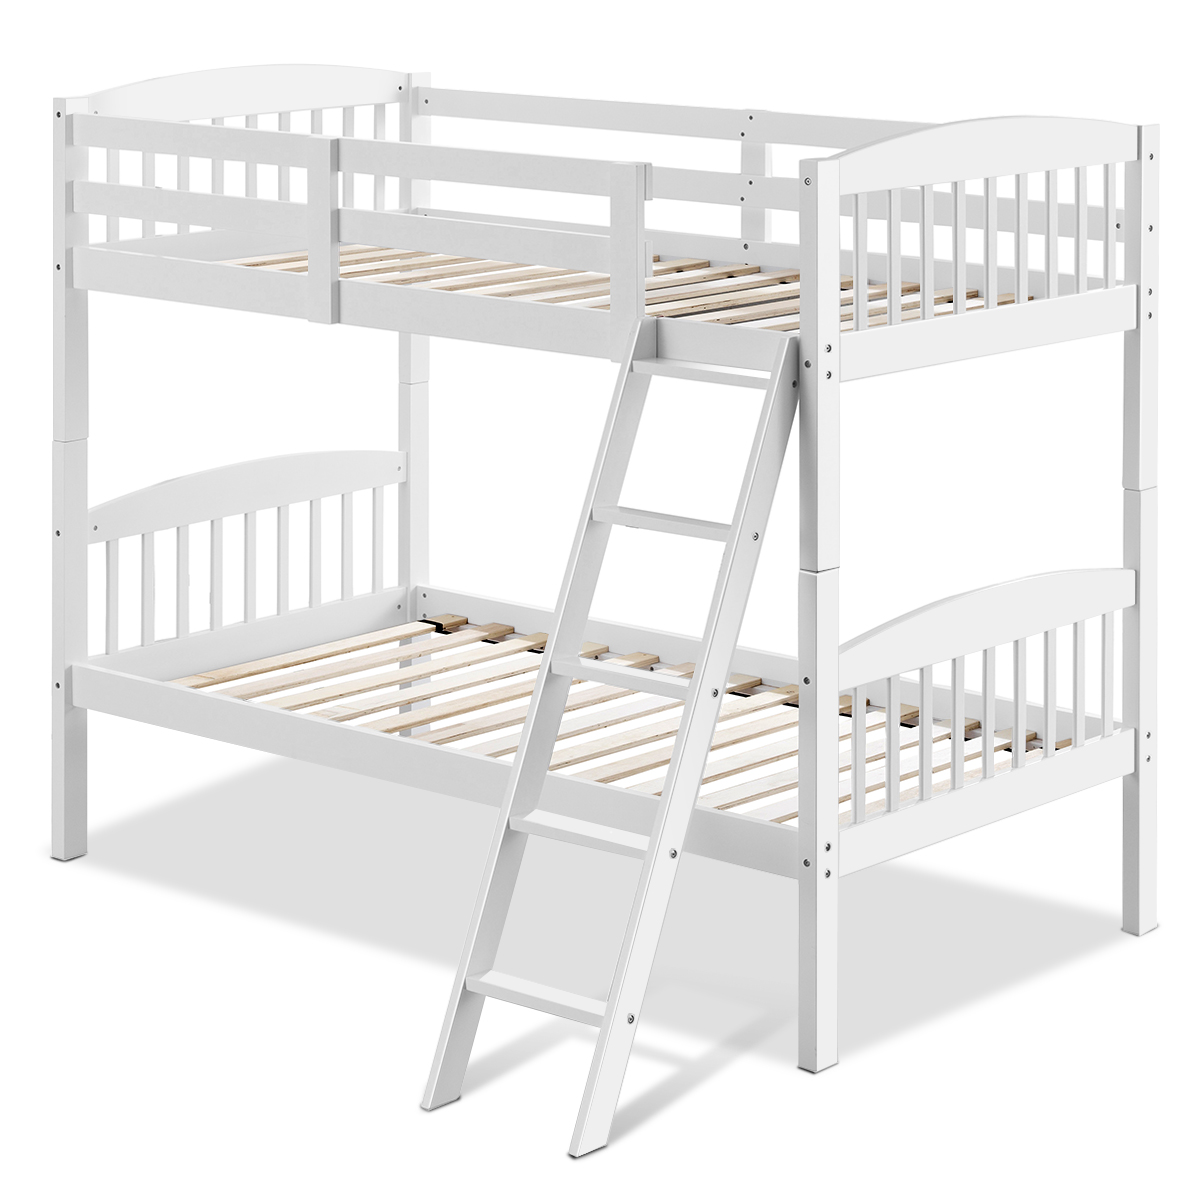 Hardwood Twin Bunk Beds Rubber Wood 2 Individual Kid Bed Ladder Guardrail White Baby Cribs Aliexpress